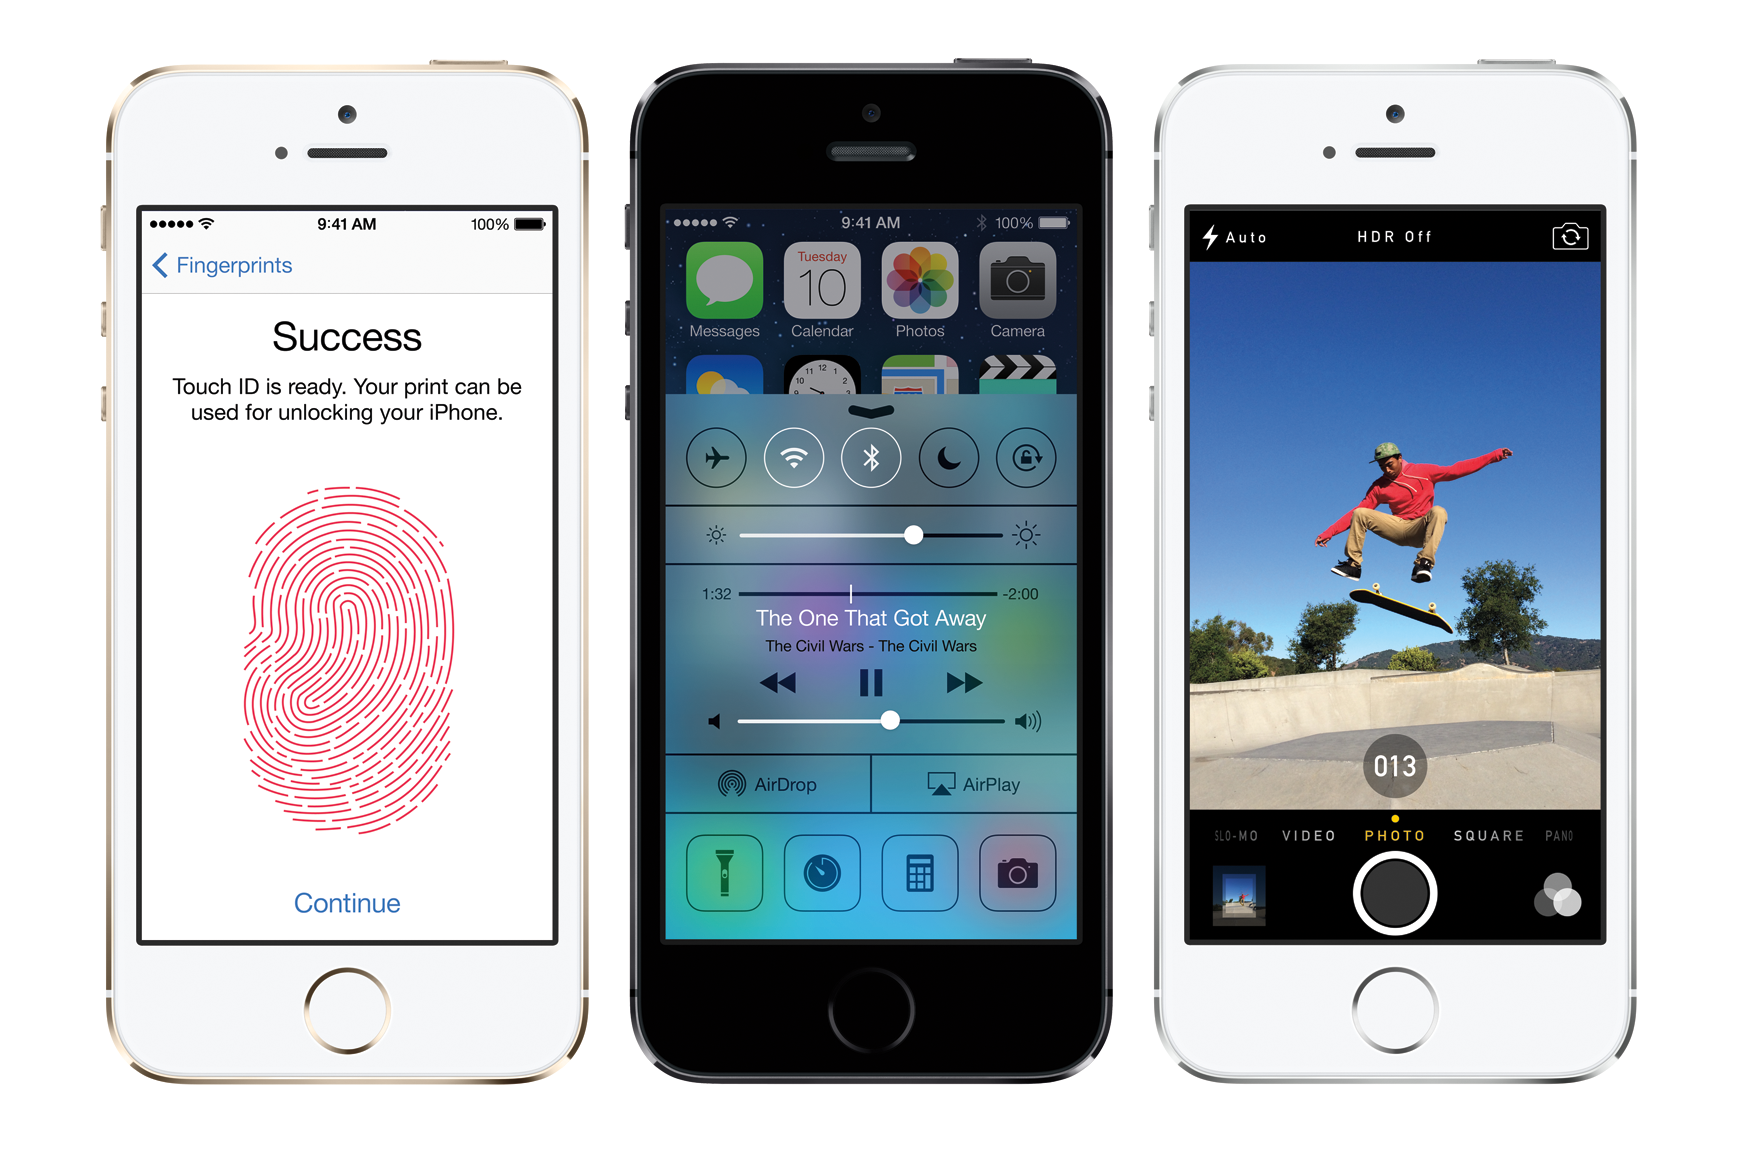 iOS 8: Top 5 Business Features